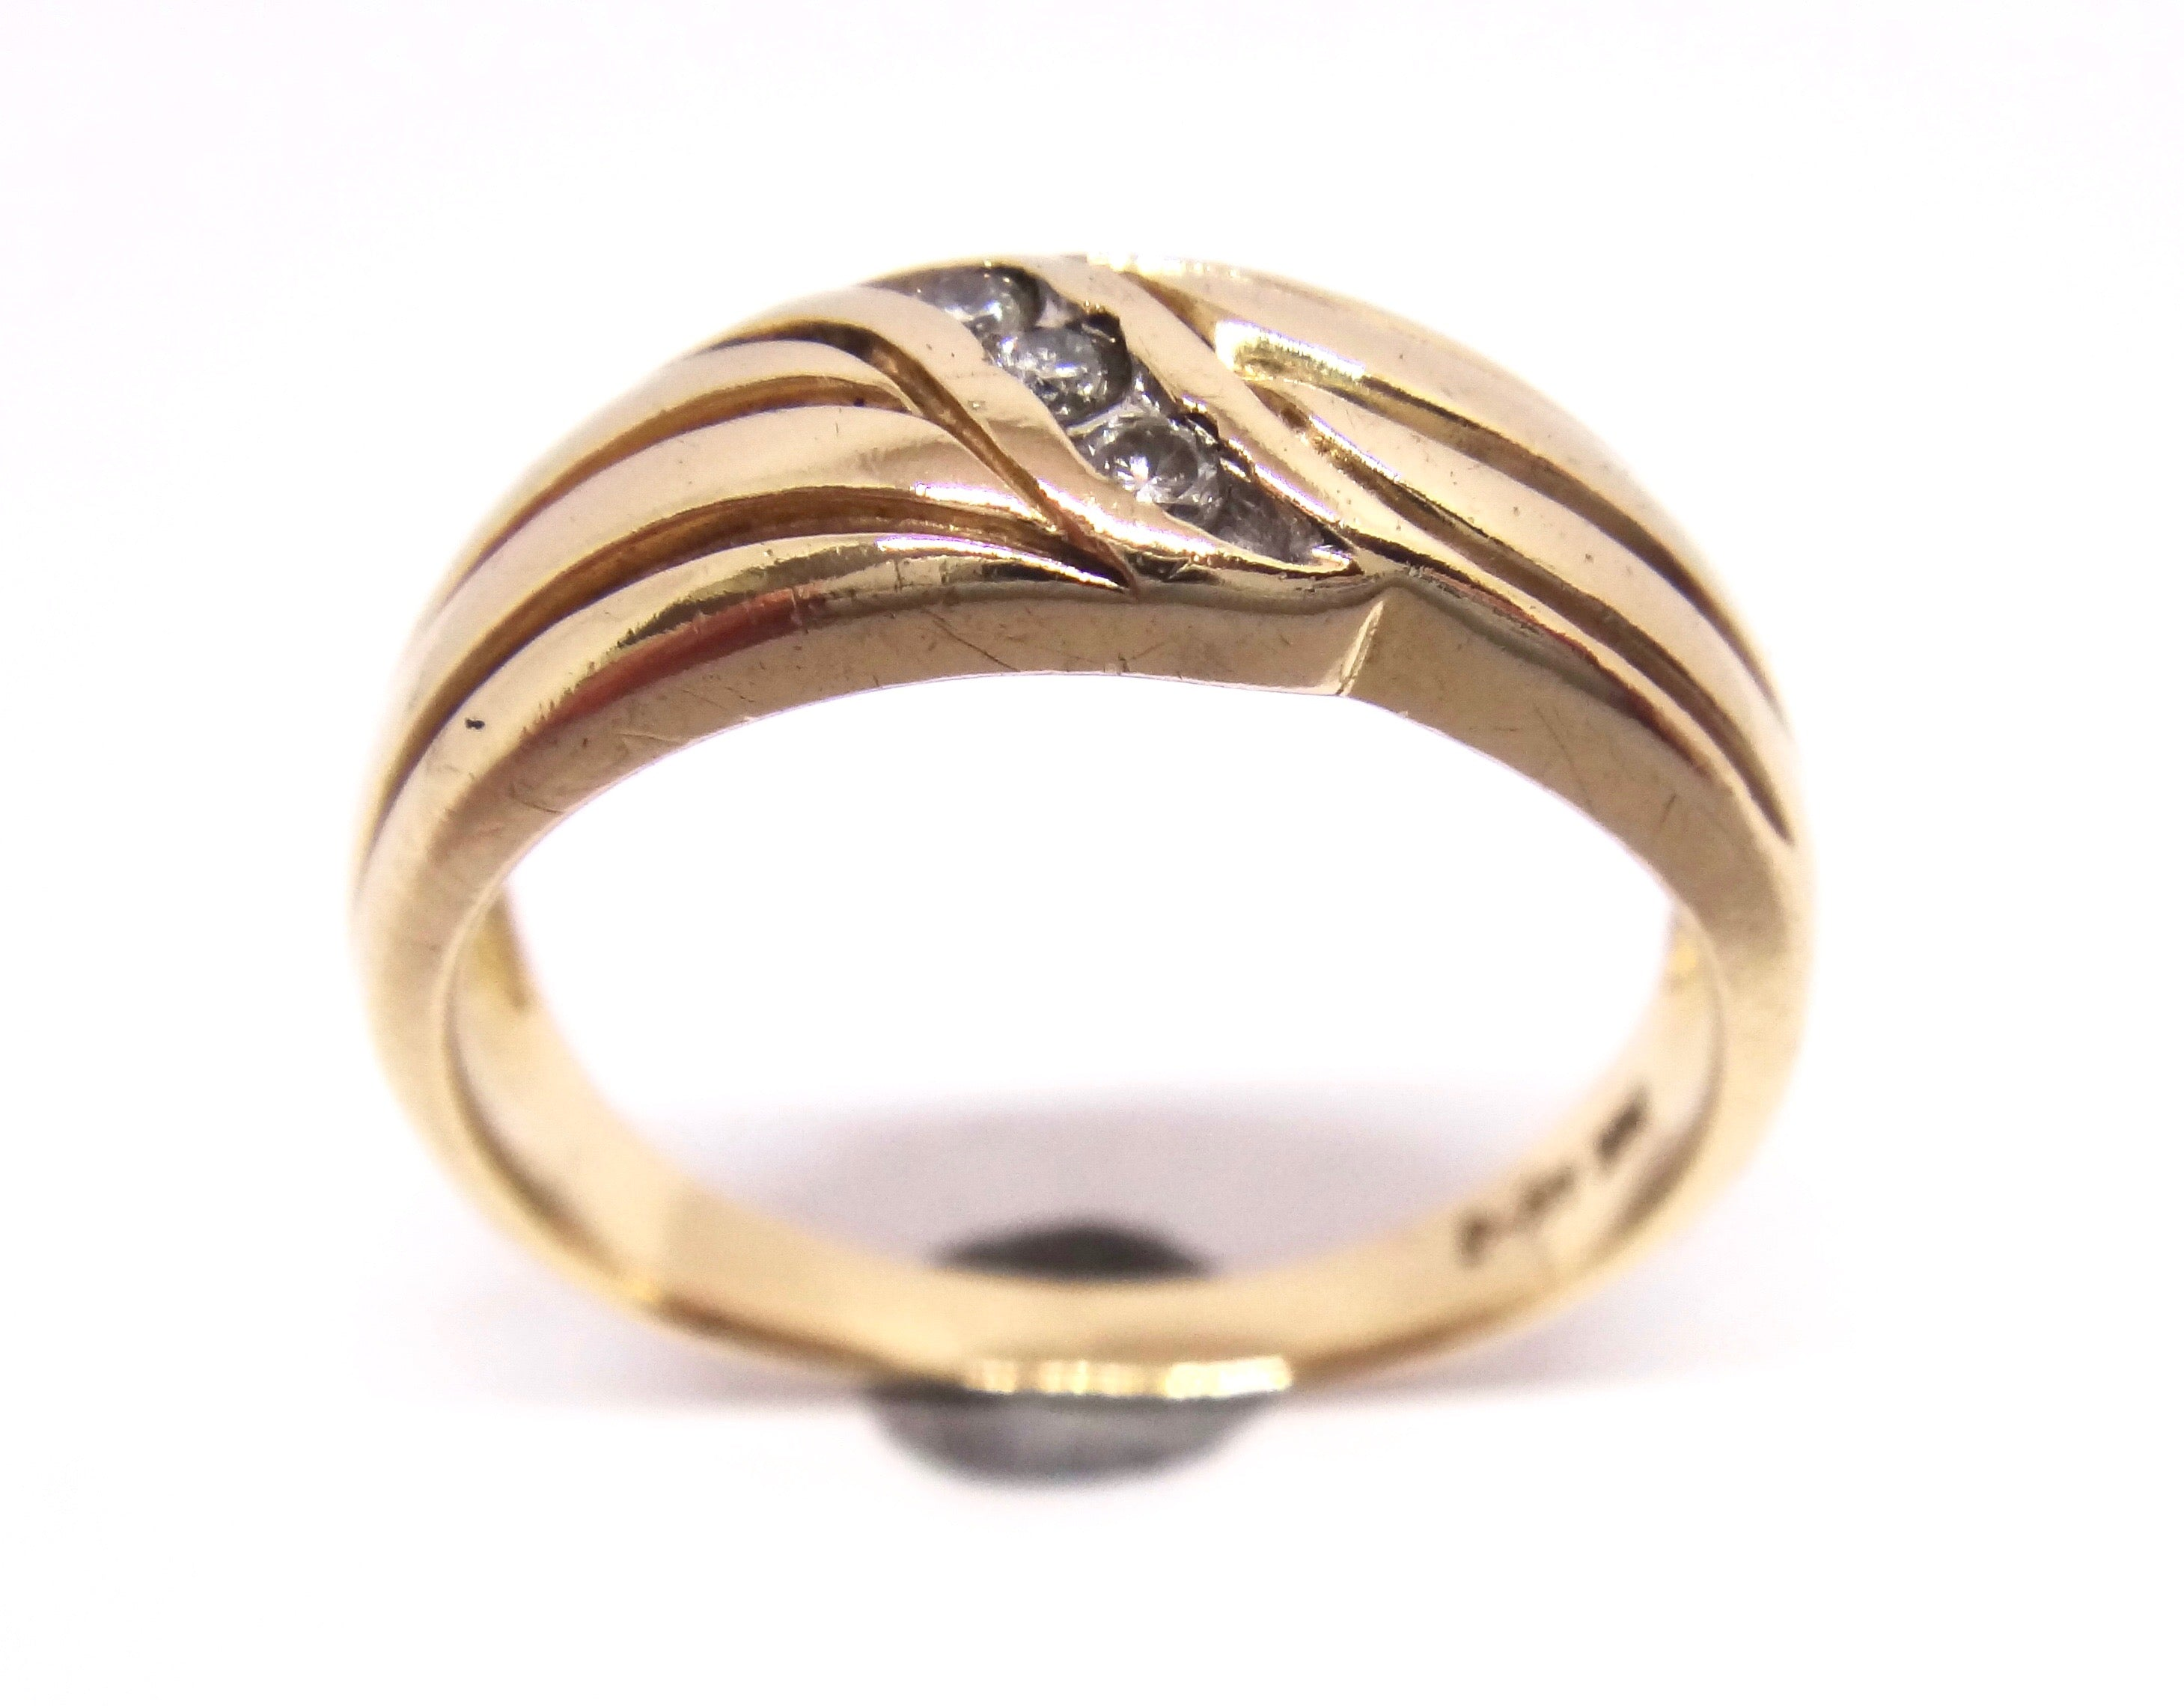 Mens 14CT Yellow GOLD & Brilliant Cut DIAMOND Ring